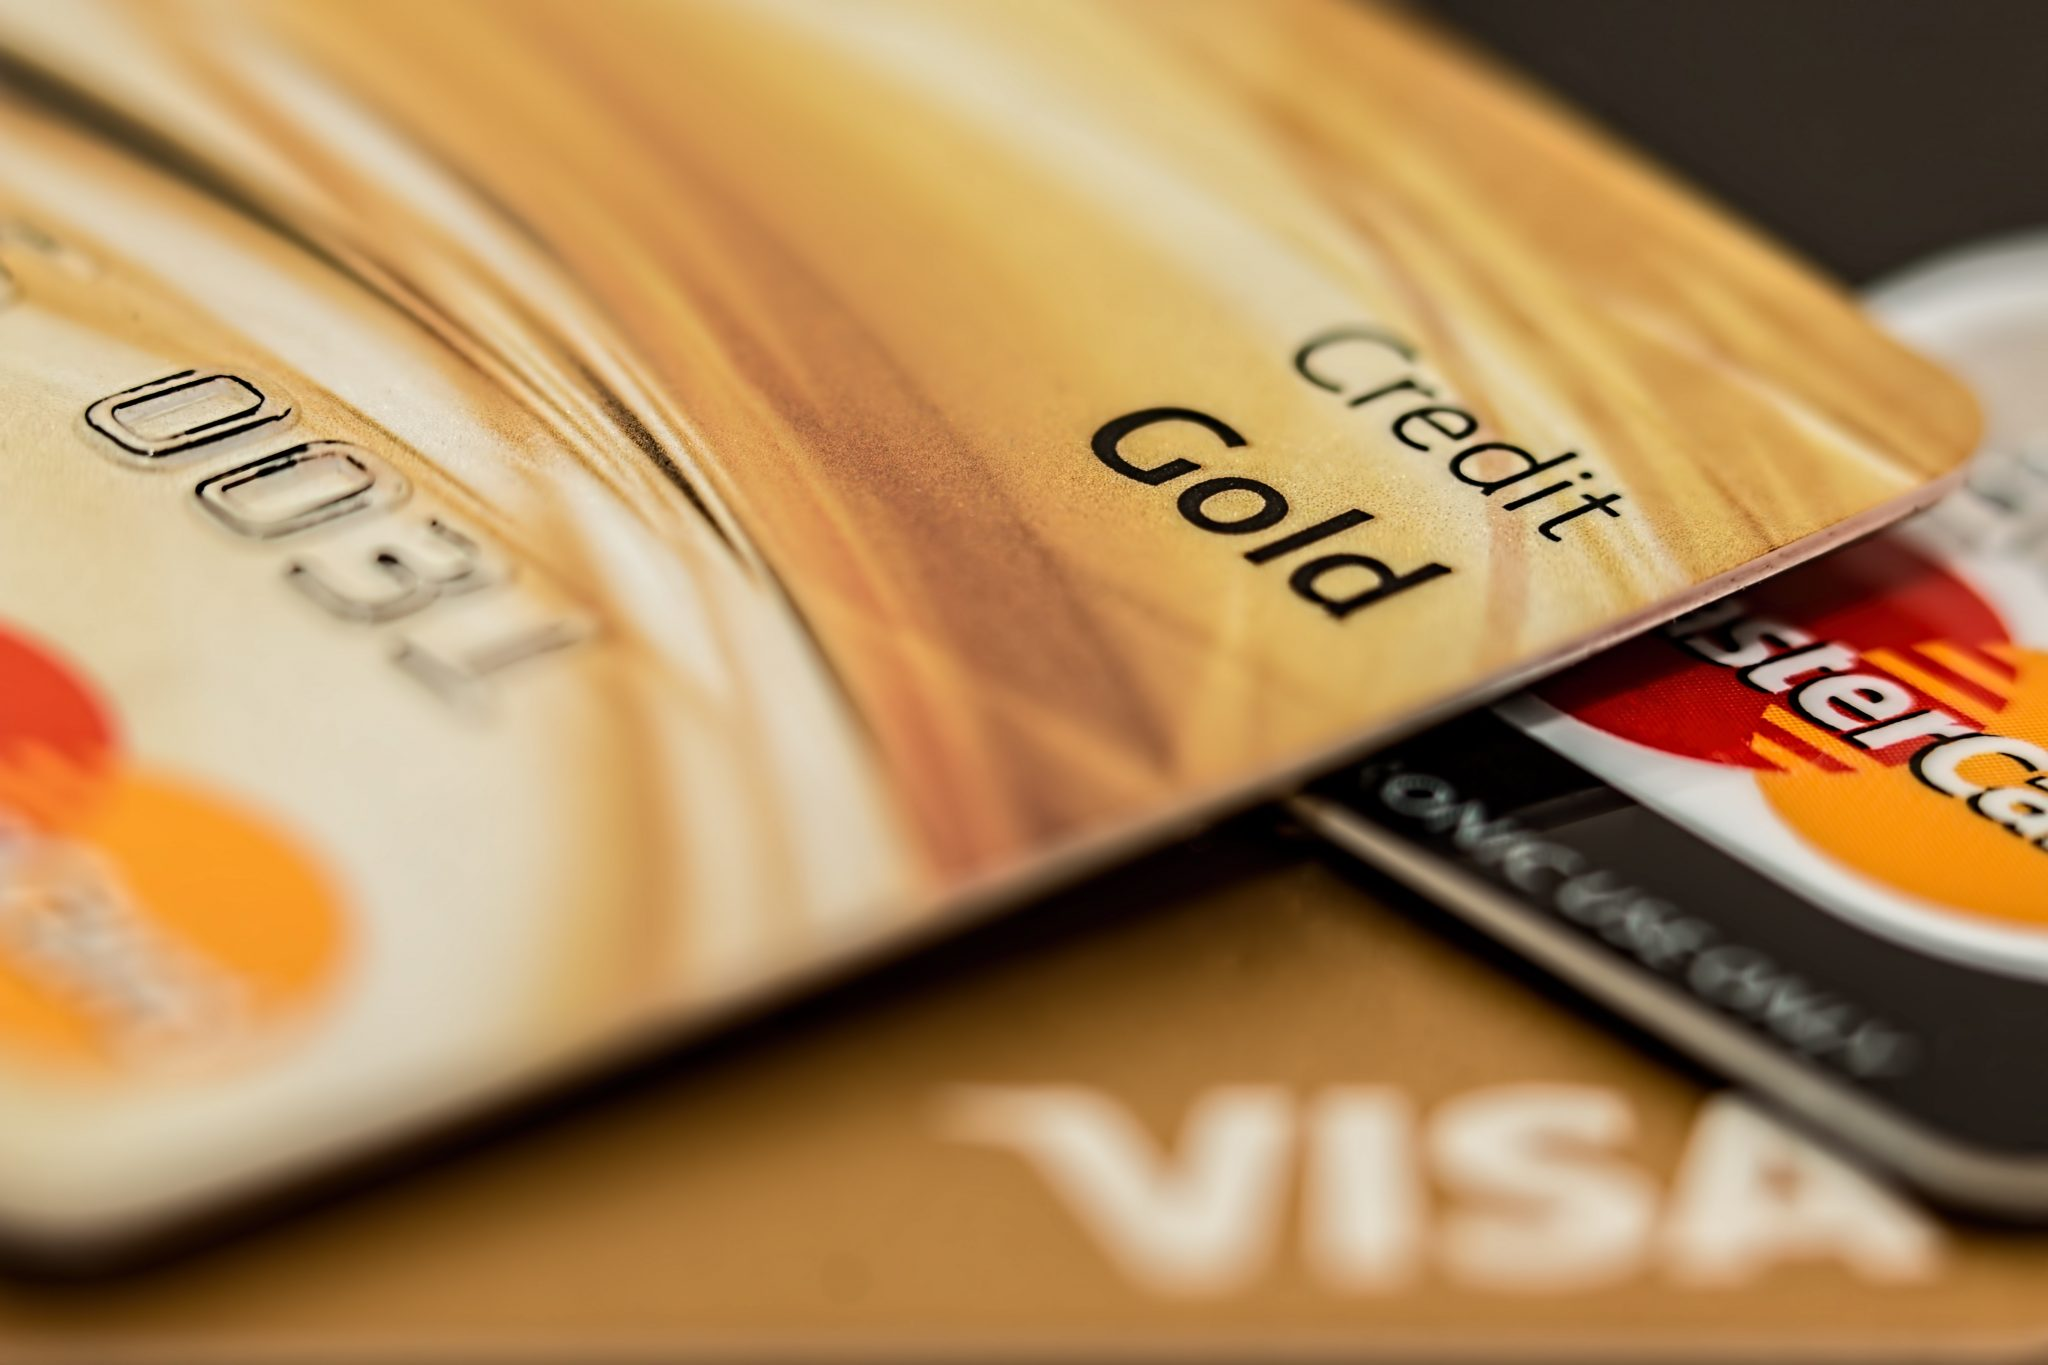 How to Improve and Maintain Good Credit Scores